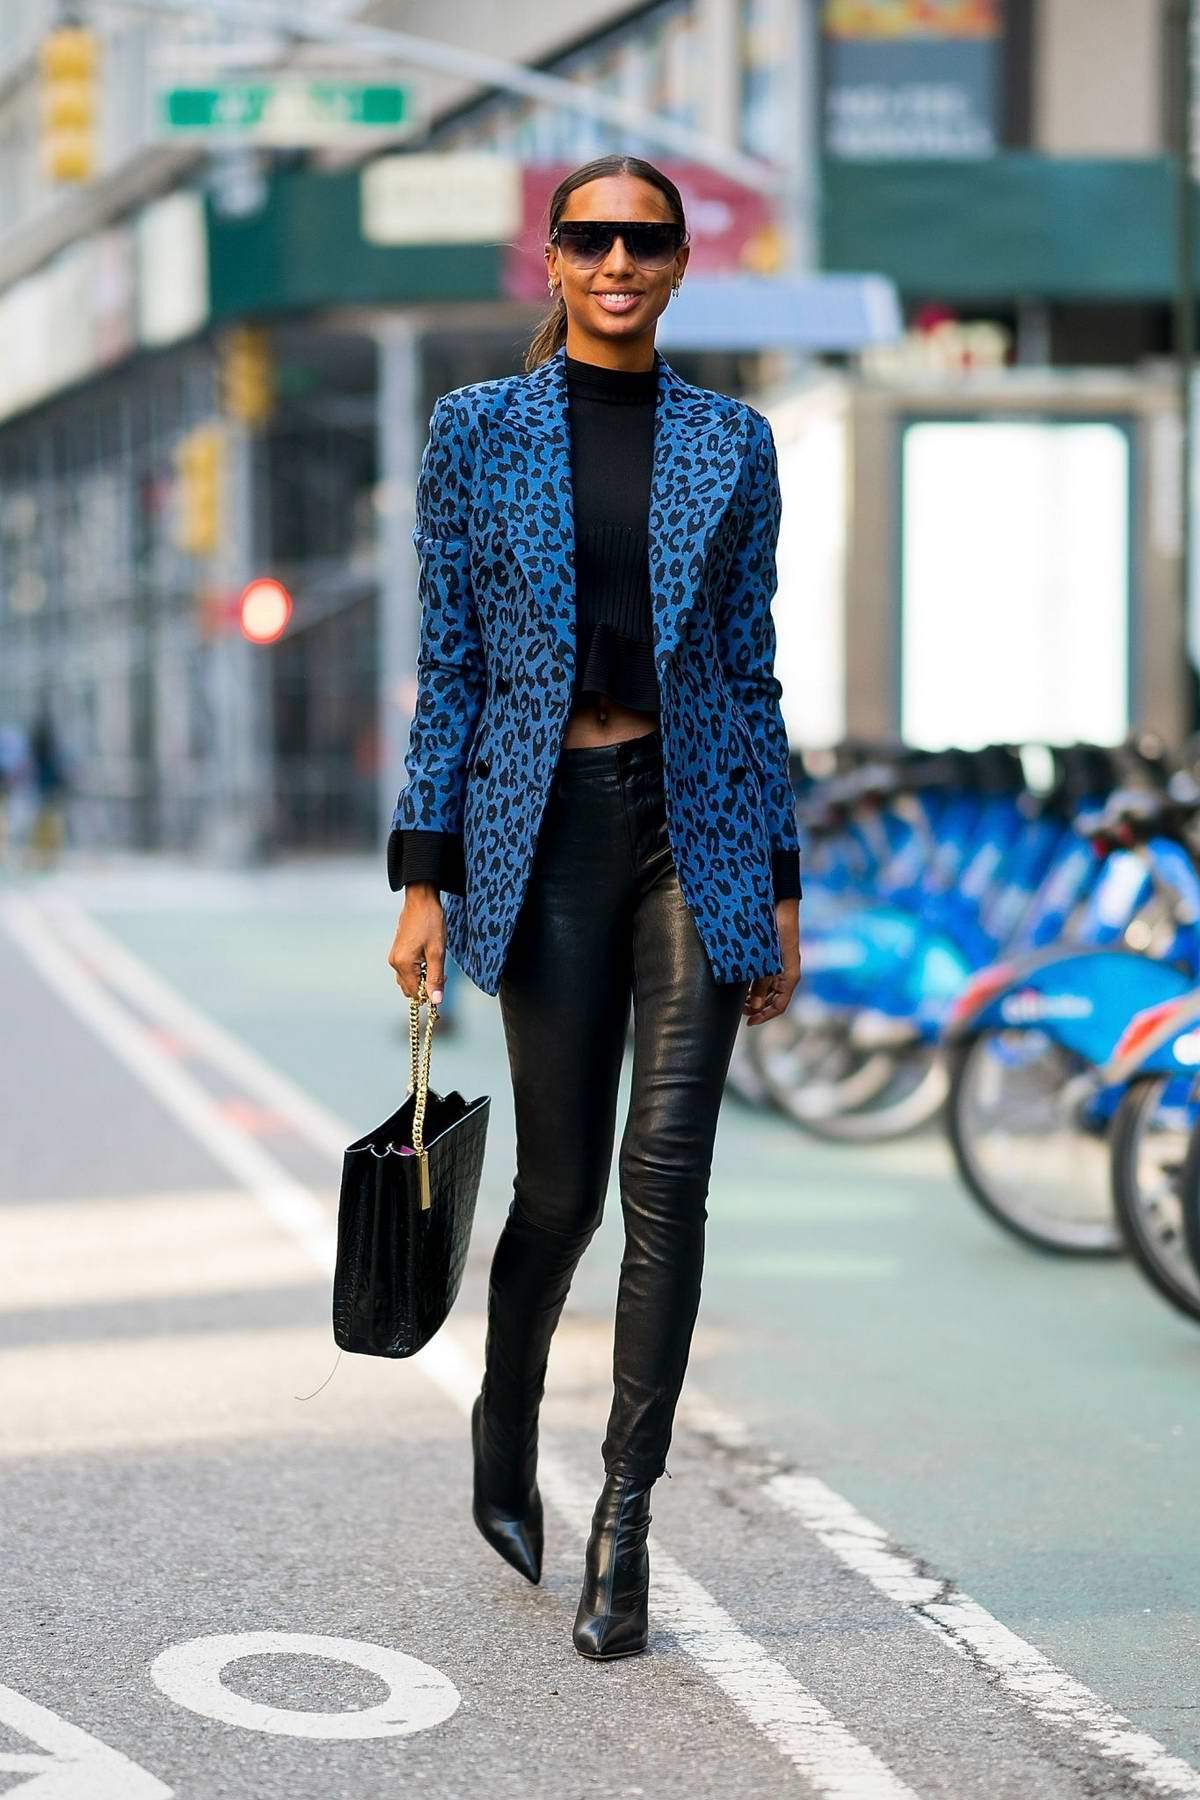 Jasmine Tookes wears an animal print blue jacket with leather pants and boots while arriving for fittings at the Victoria's Secret offices in New York City